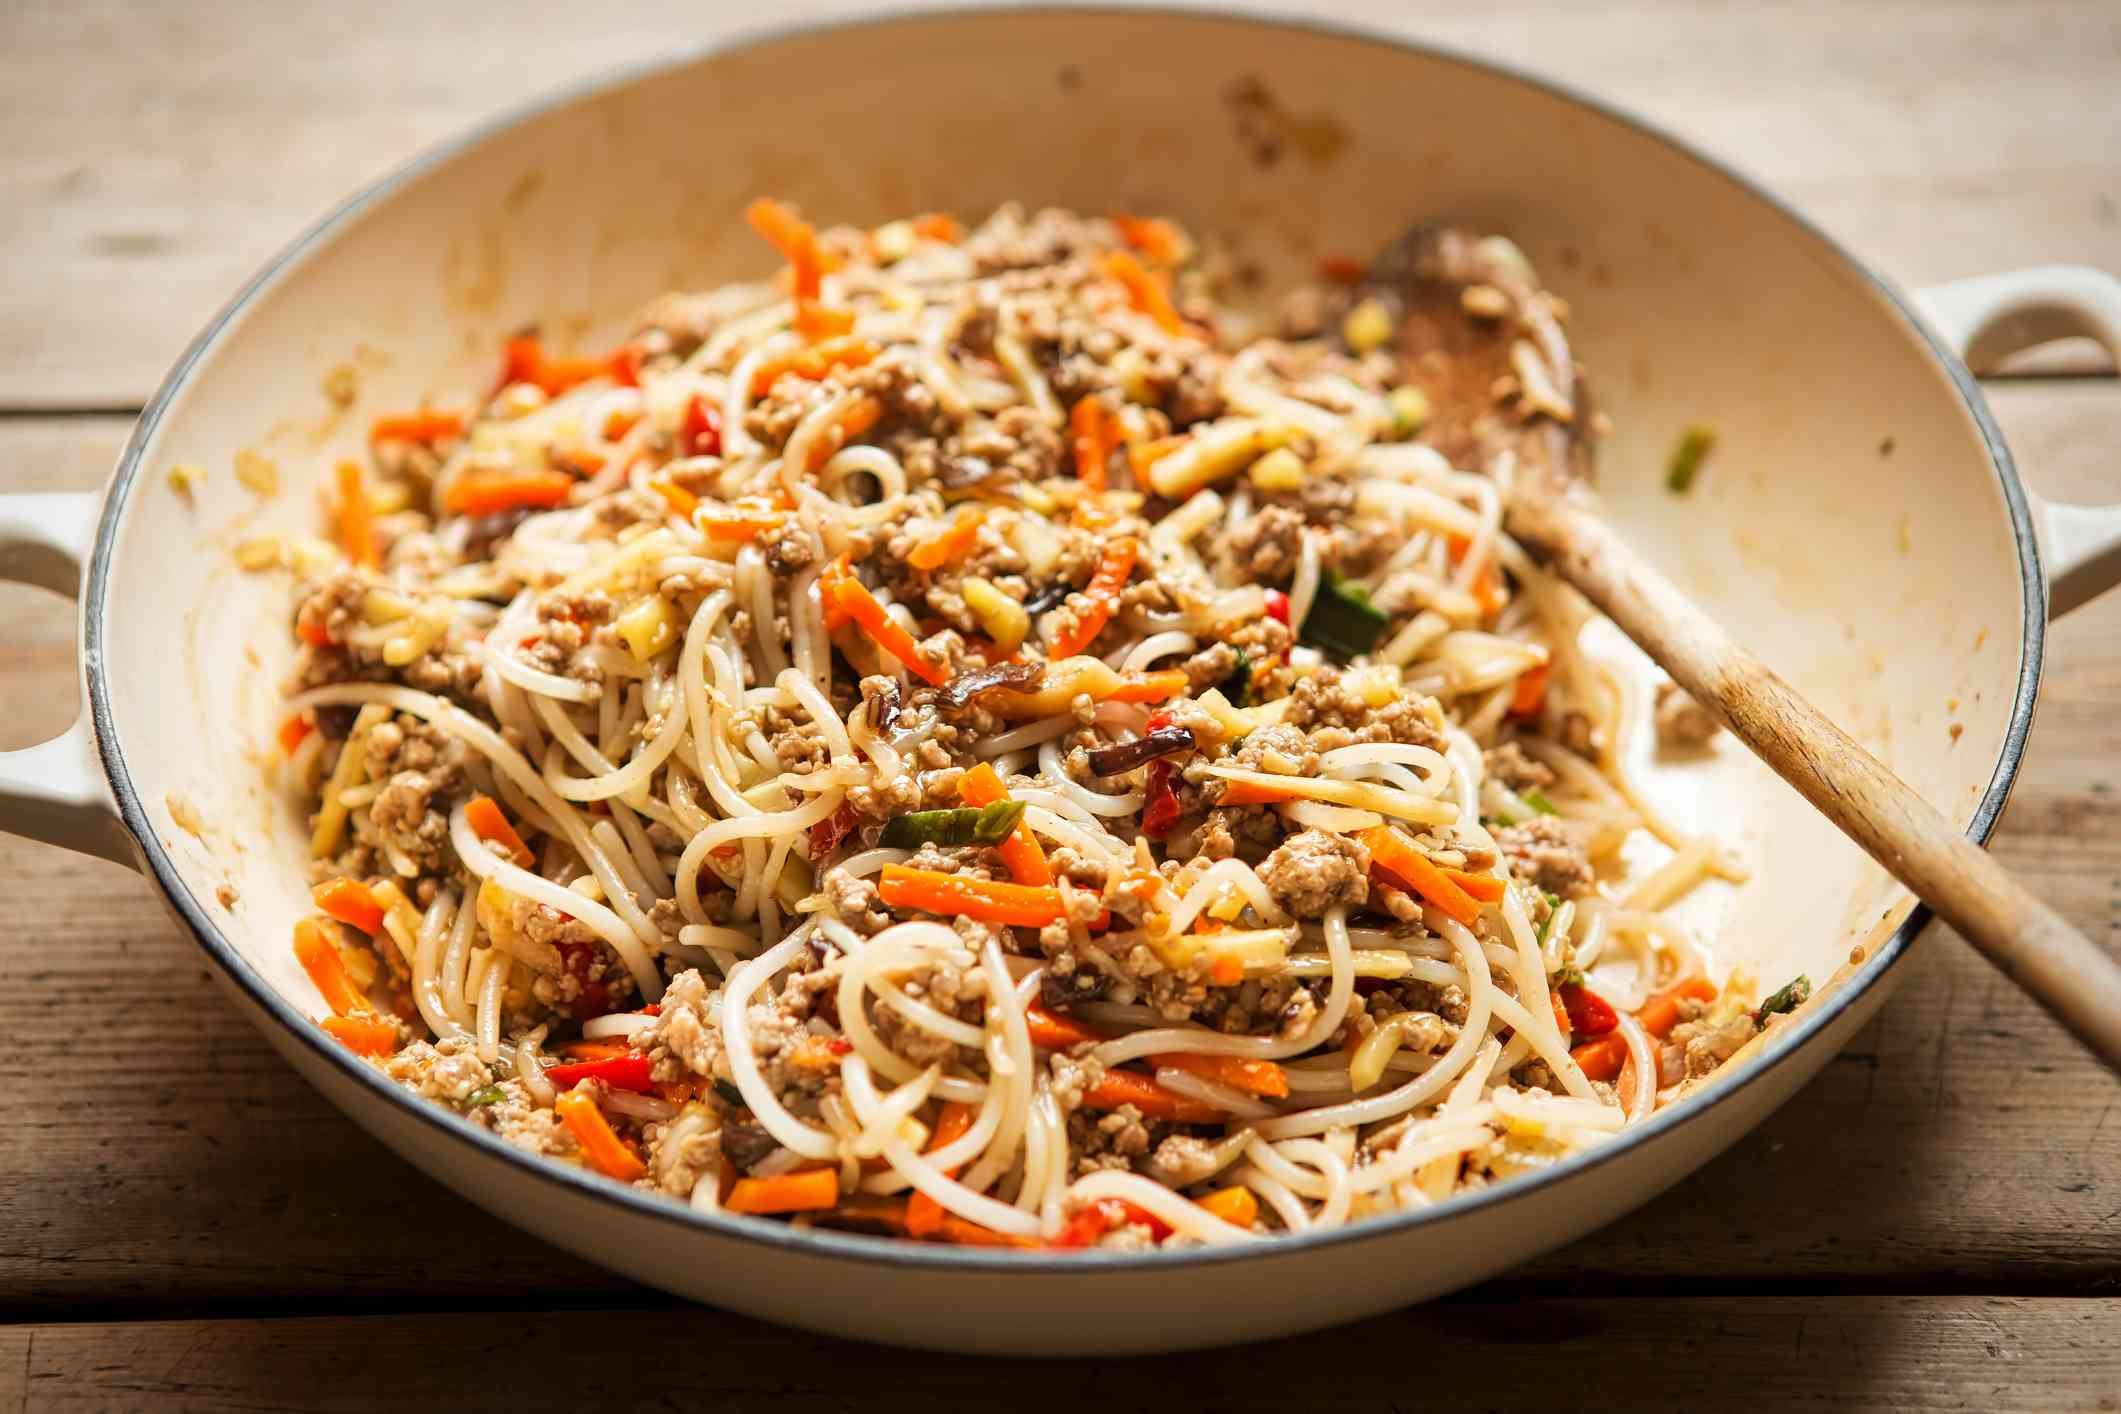 Chinese pork noodle stir fry with egg noodles and vegetables